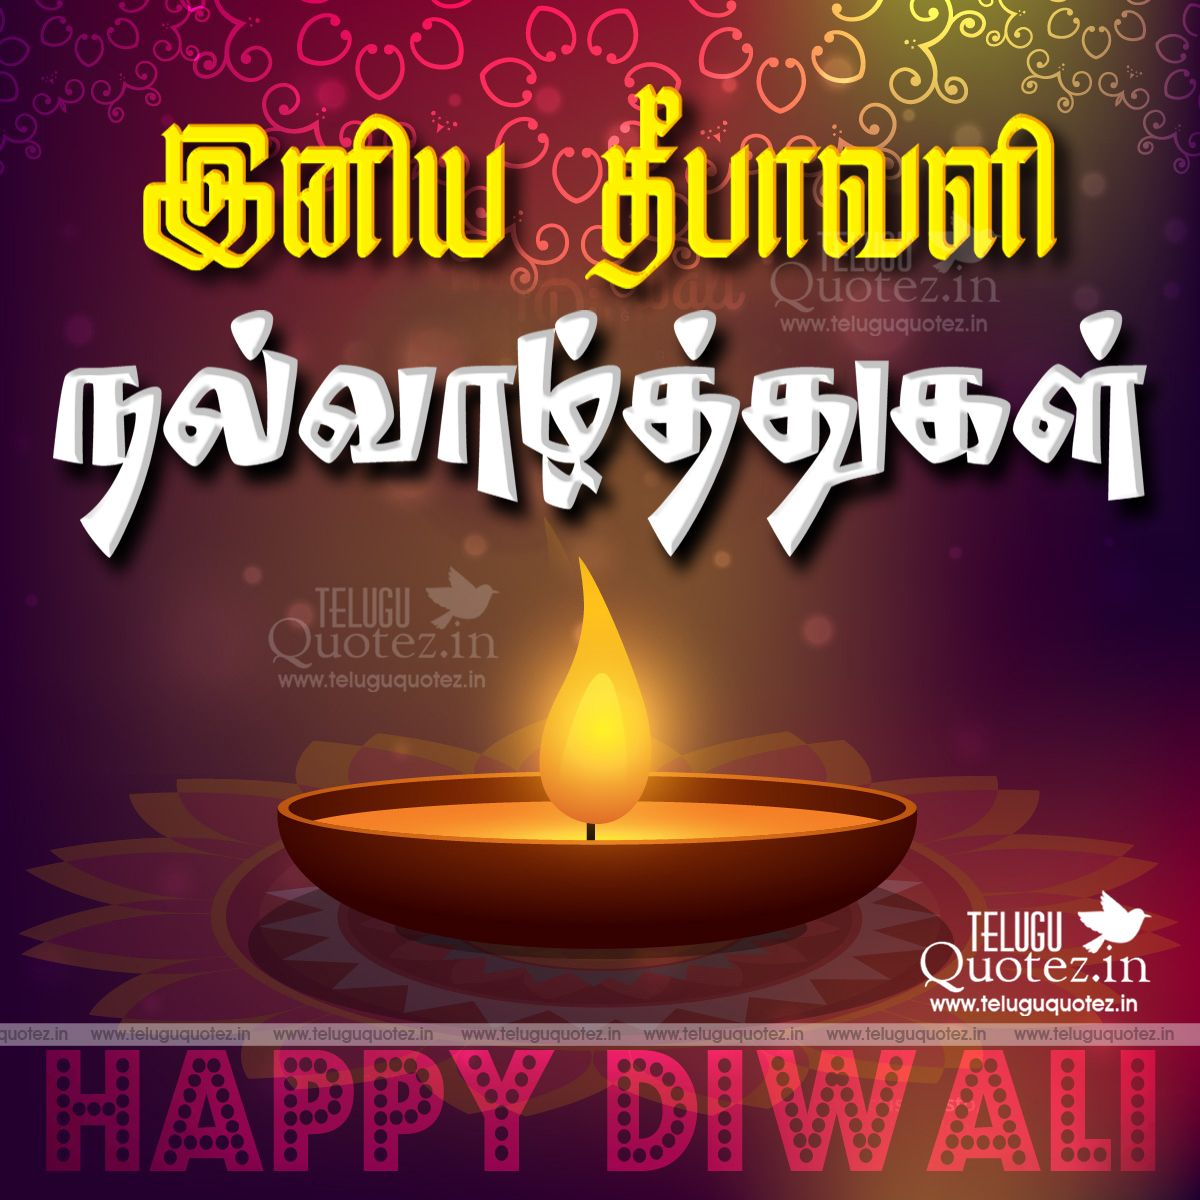 Happy Deepavali Quotes In English: Happy Diwali Tamil Quotes Wishes,wish You Happy Diwali